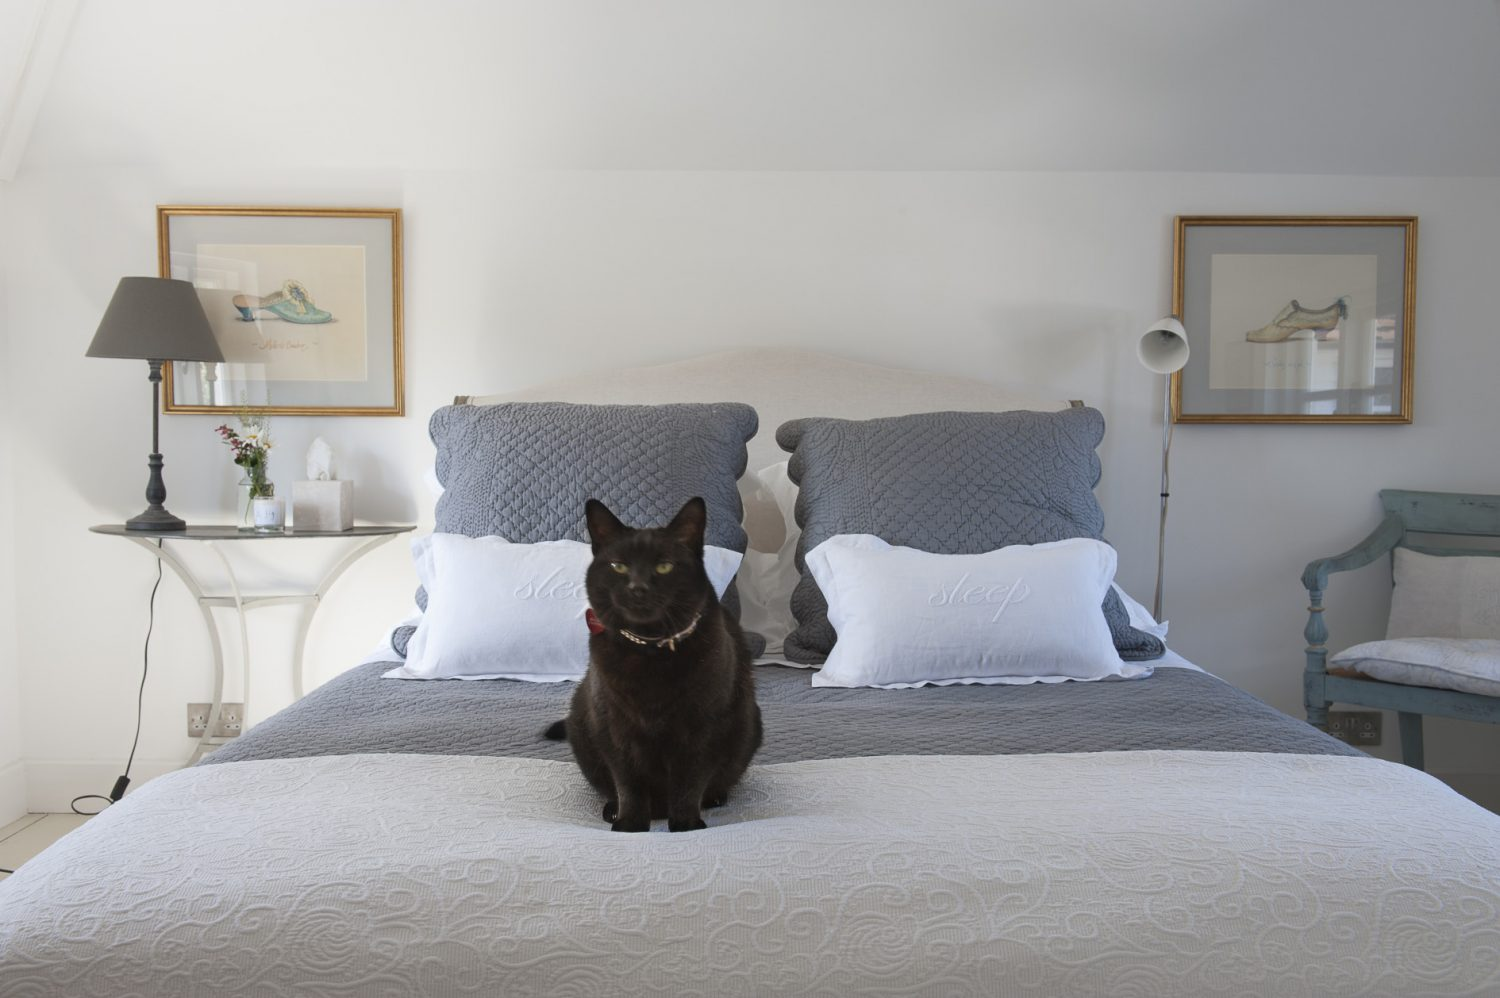 Immaculately dressed beds from Loaf feature in both of the property's bedrooms